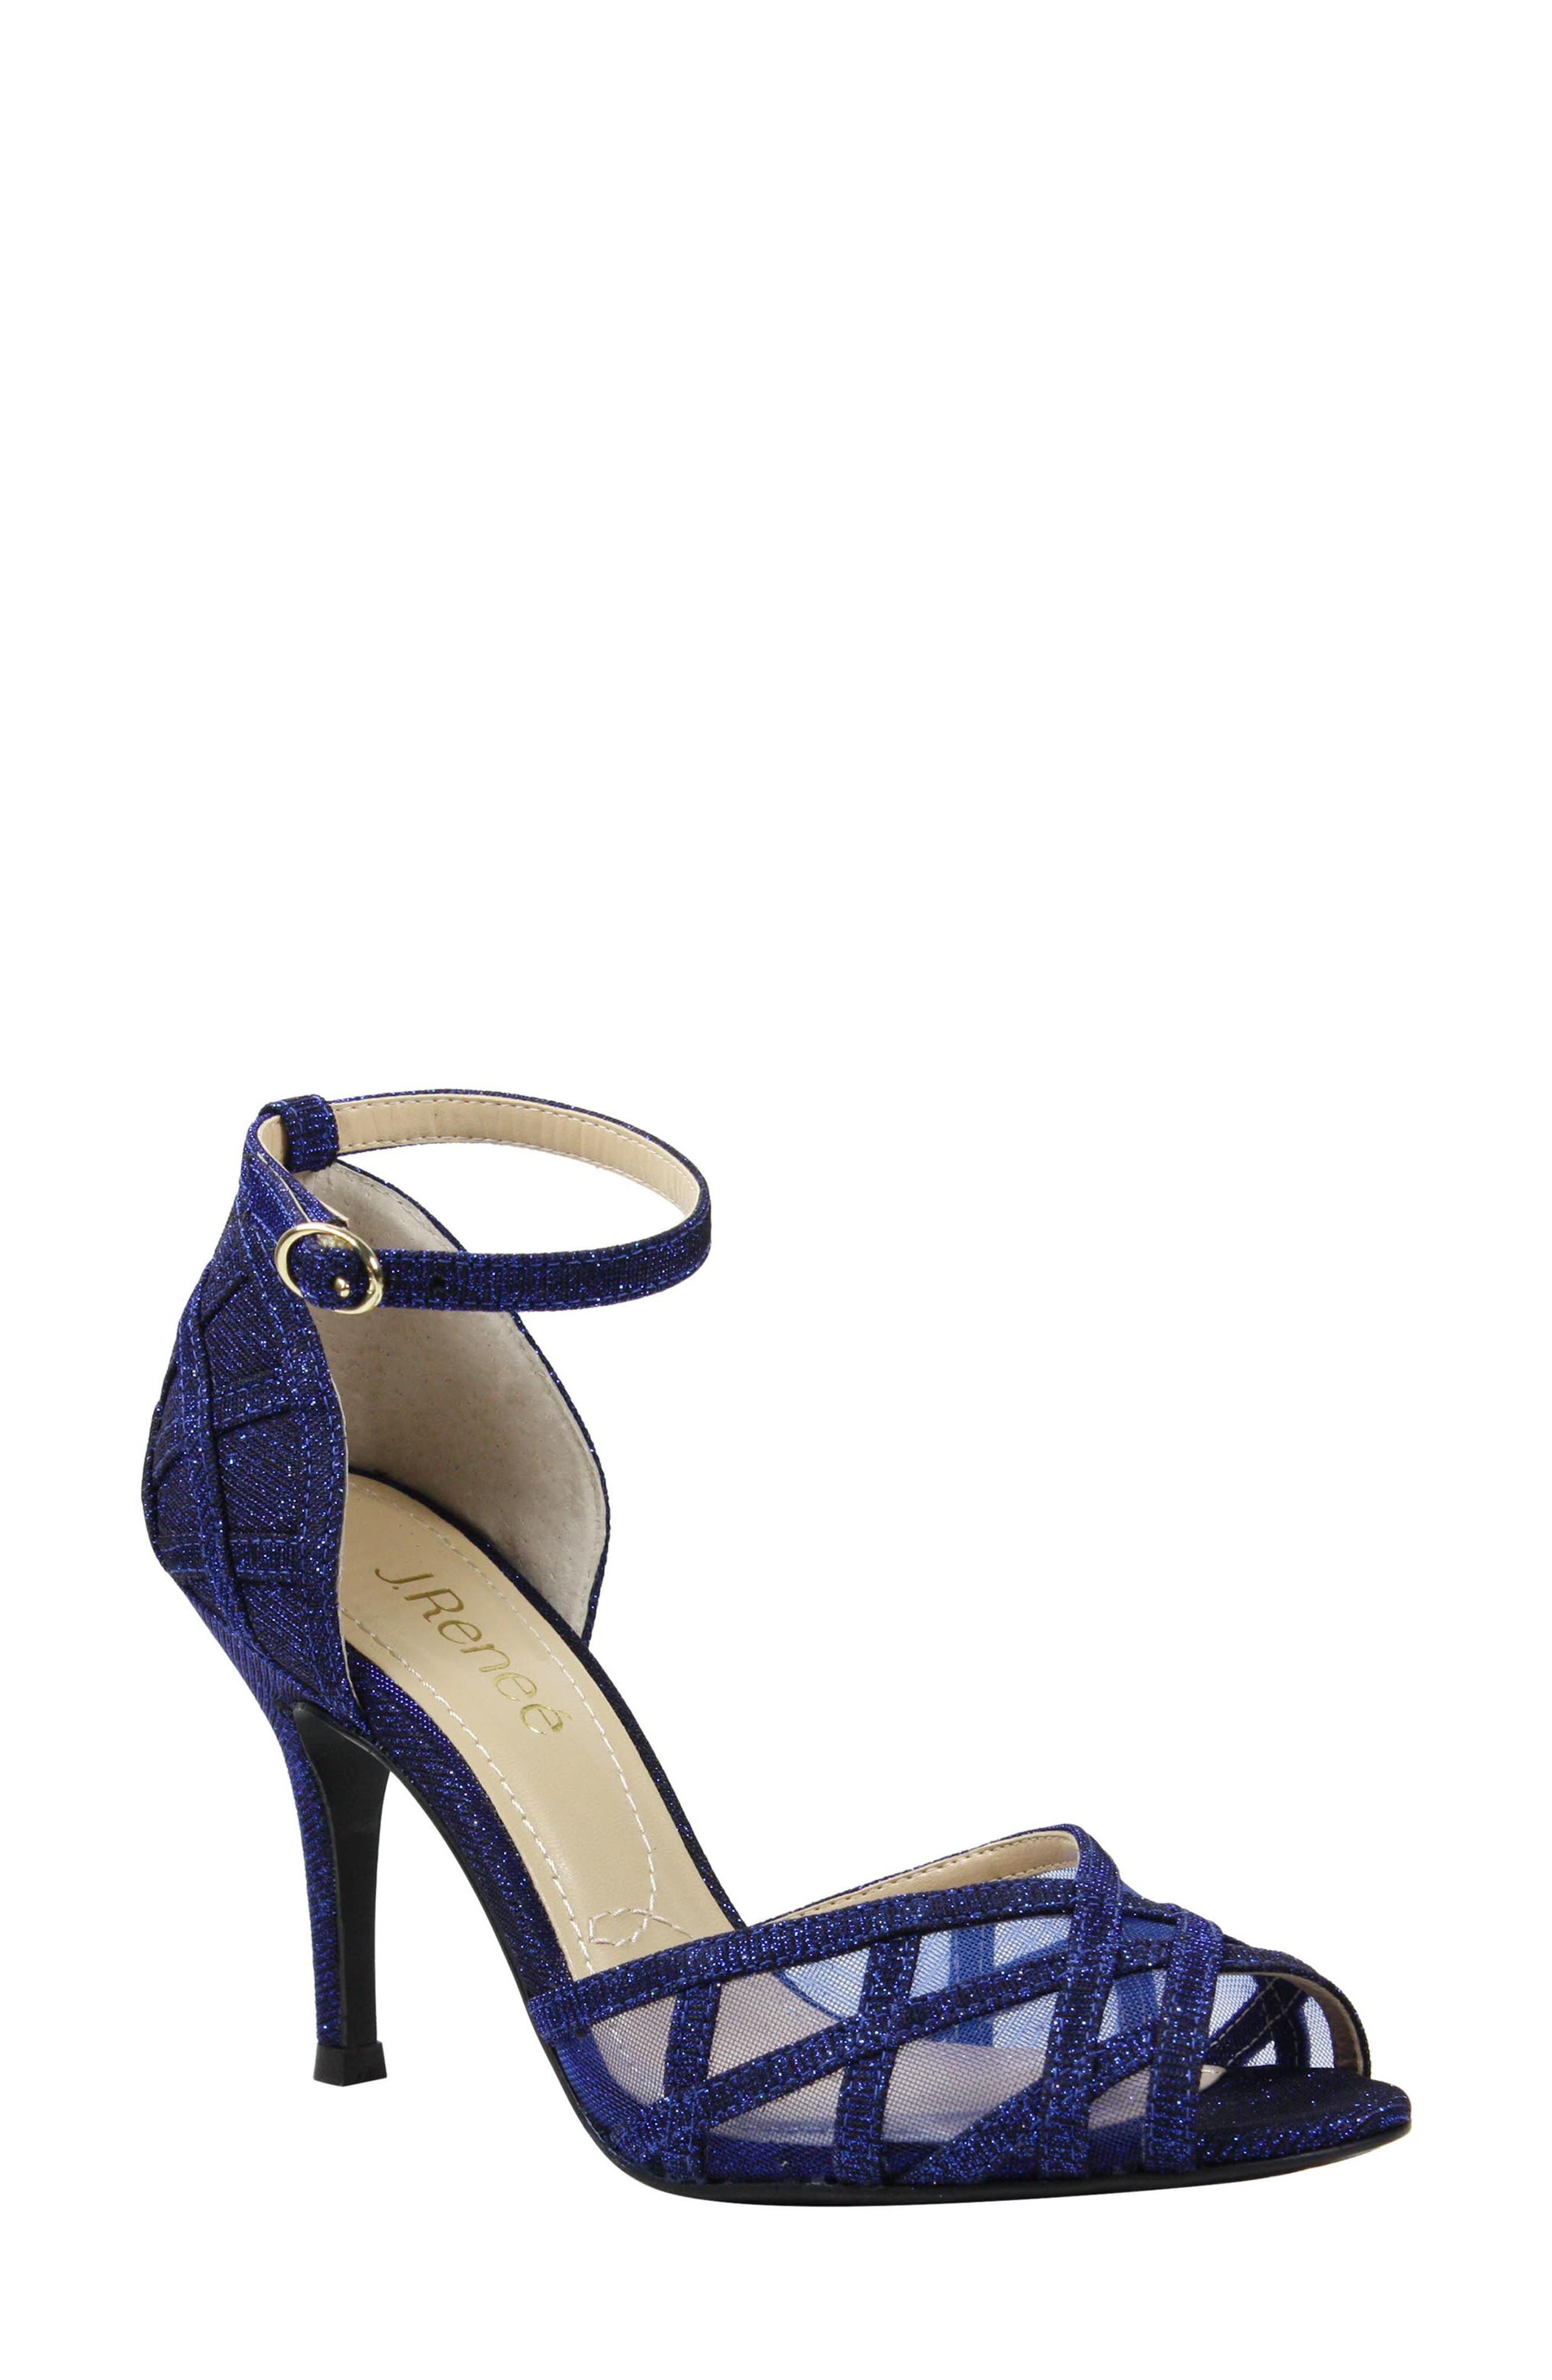 Mataro Embellished Ankle Strap Pump,                         Main,                         color,